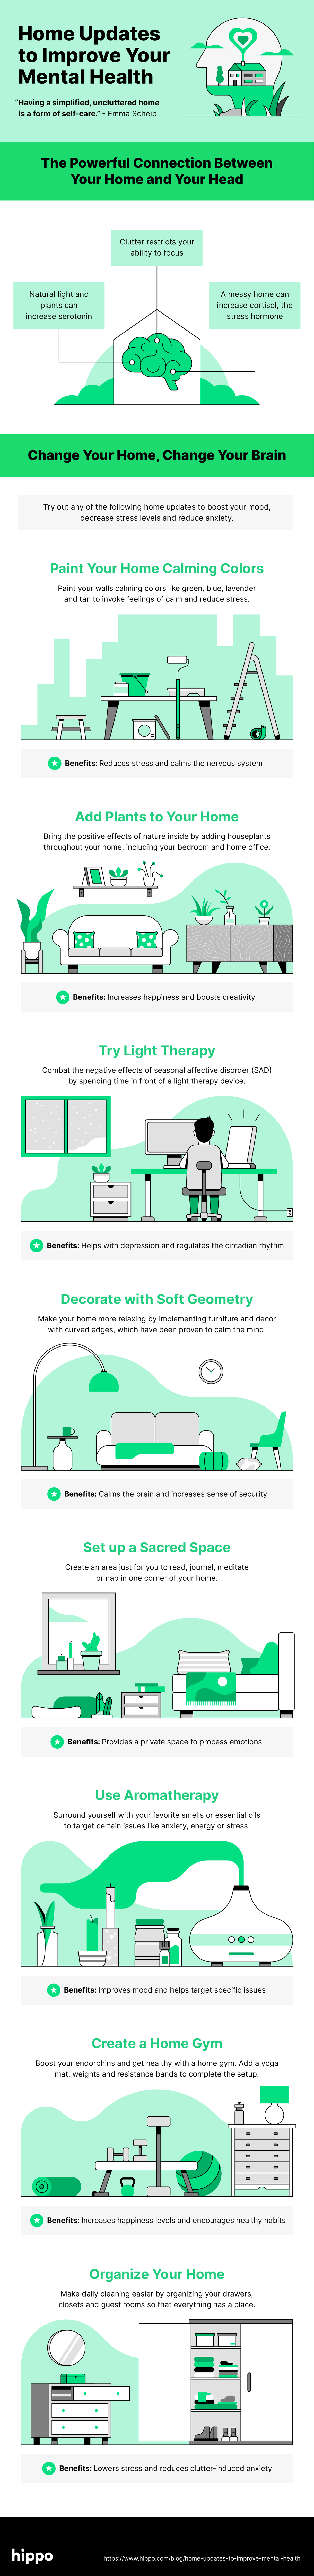 Green and white illustrated infographic on home updates to improve mental health